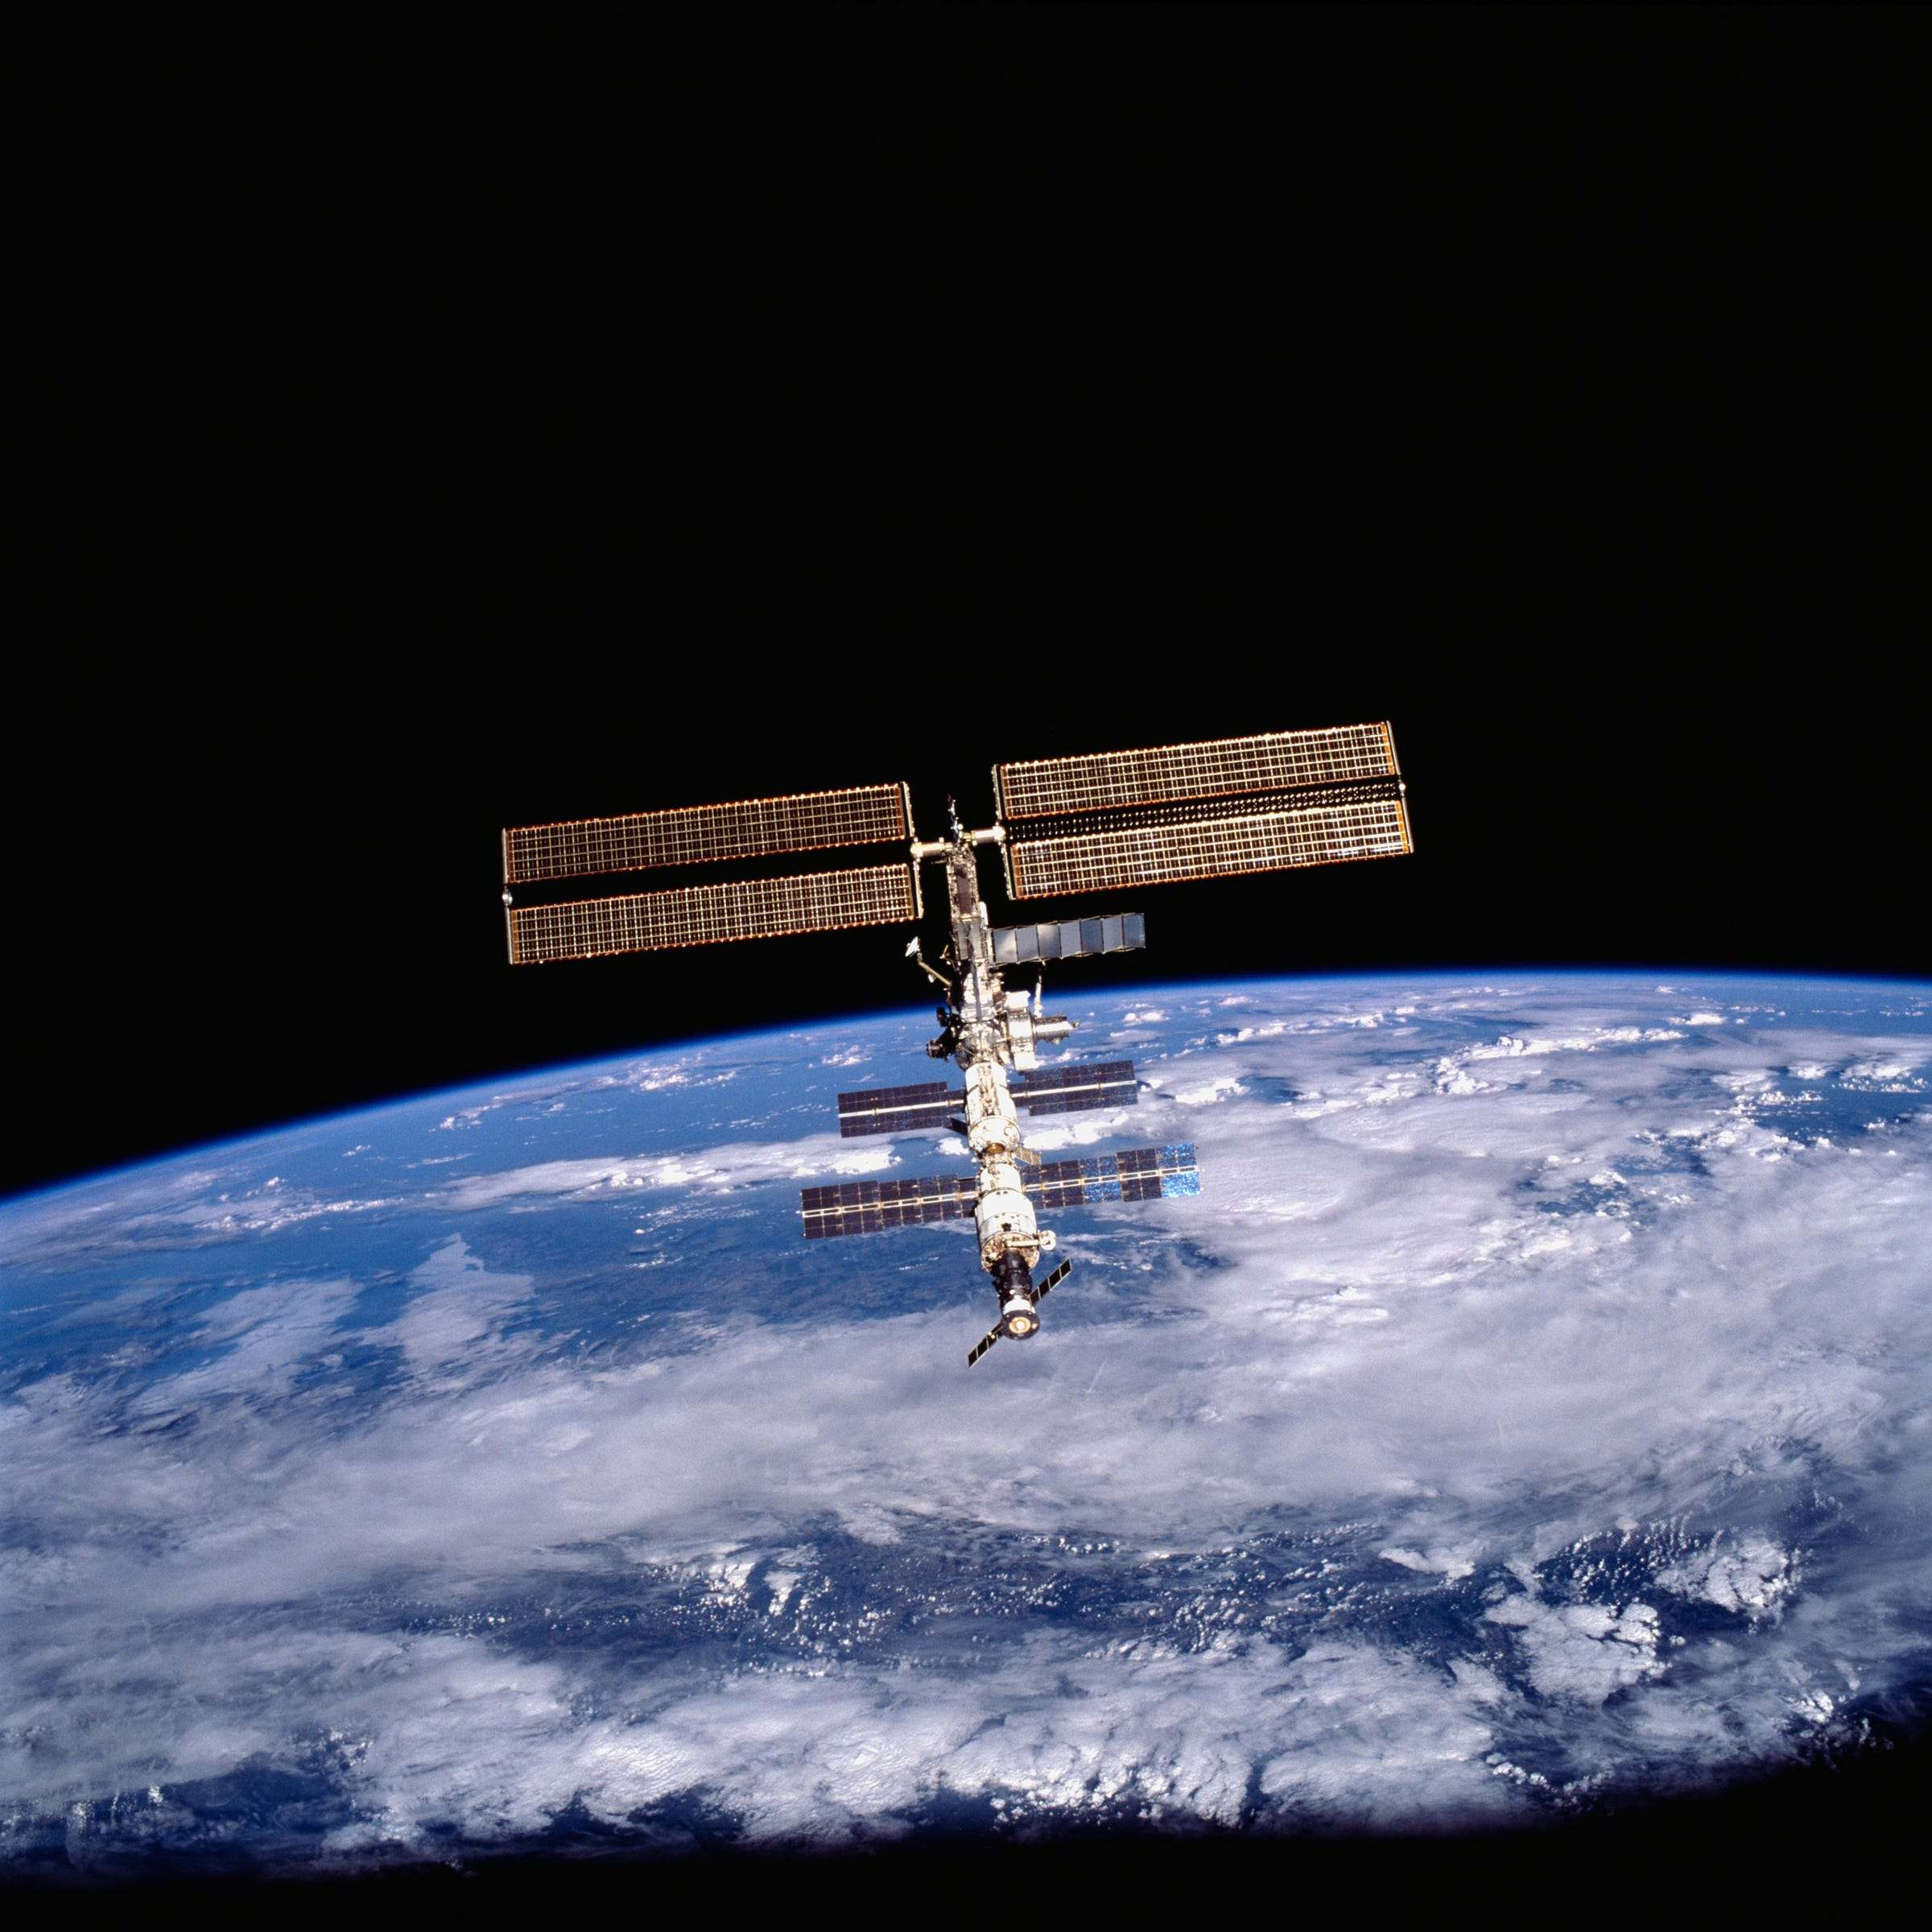 From 250 miles above Earth orbiting the planet at 17500